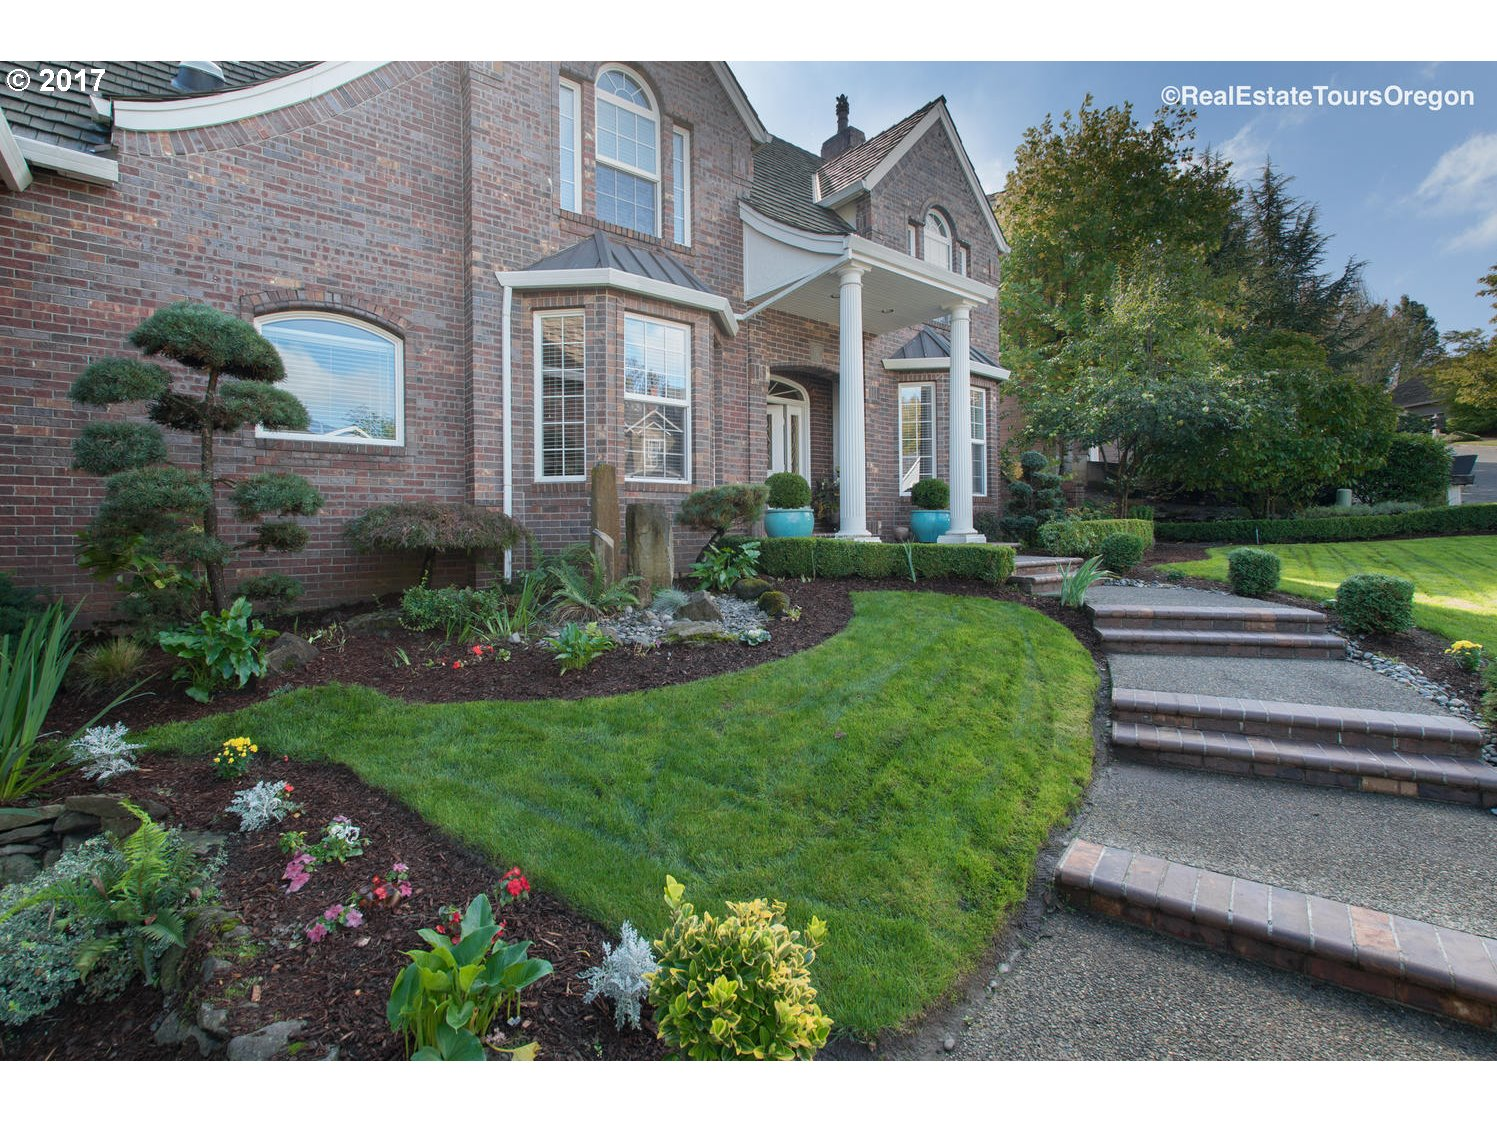 Property for sale at 2234 NW BIRKENDENE ST, Portland,  OR 97229